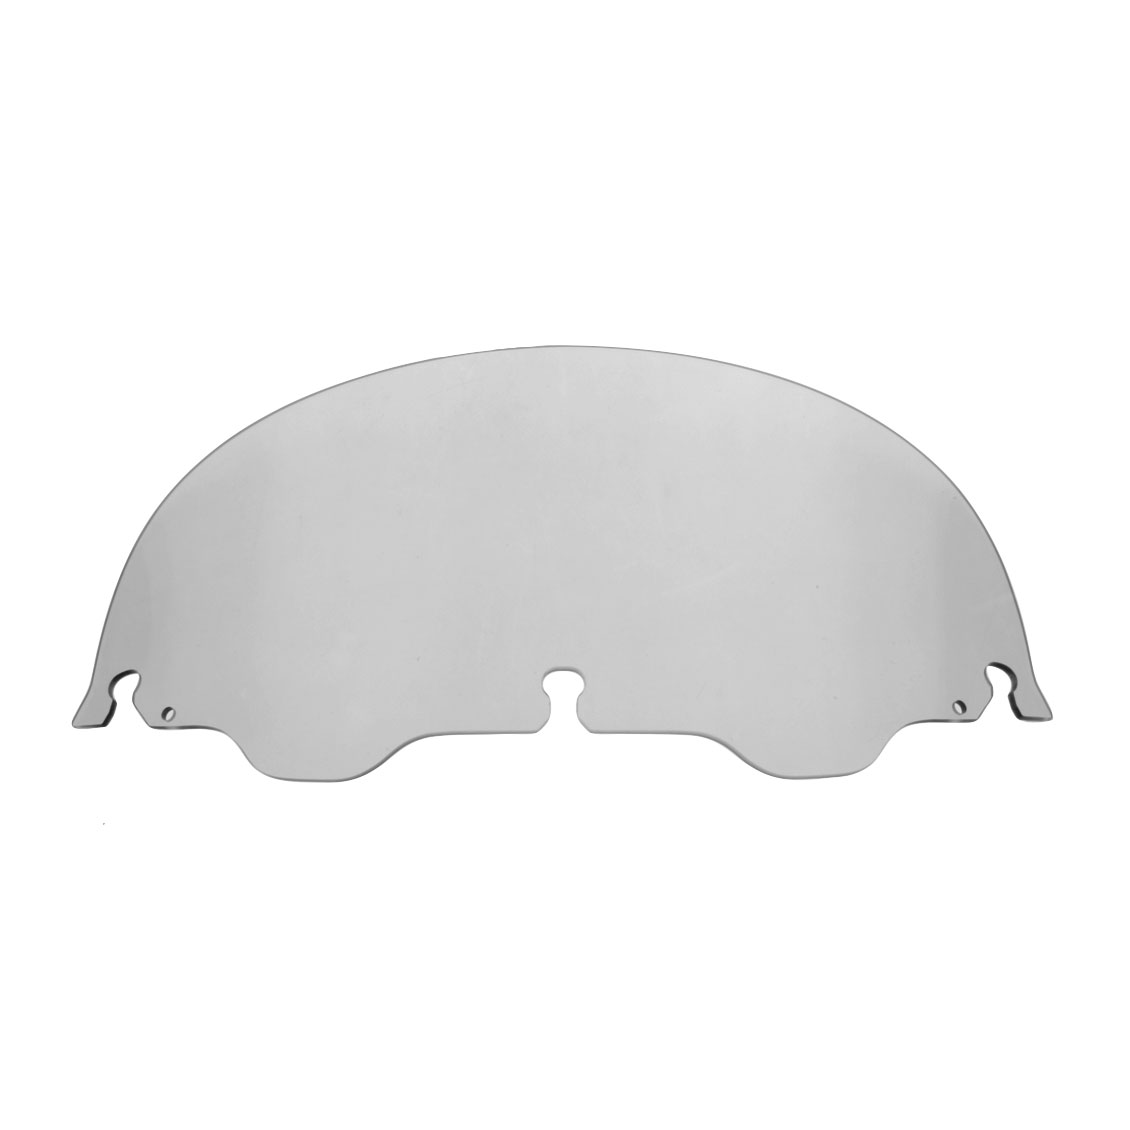 J&P Cycles® Air-Blade 10″ Smoke Acrylic Replacement Windshield